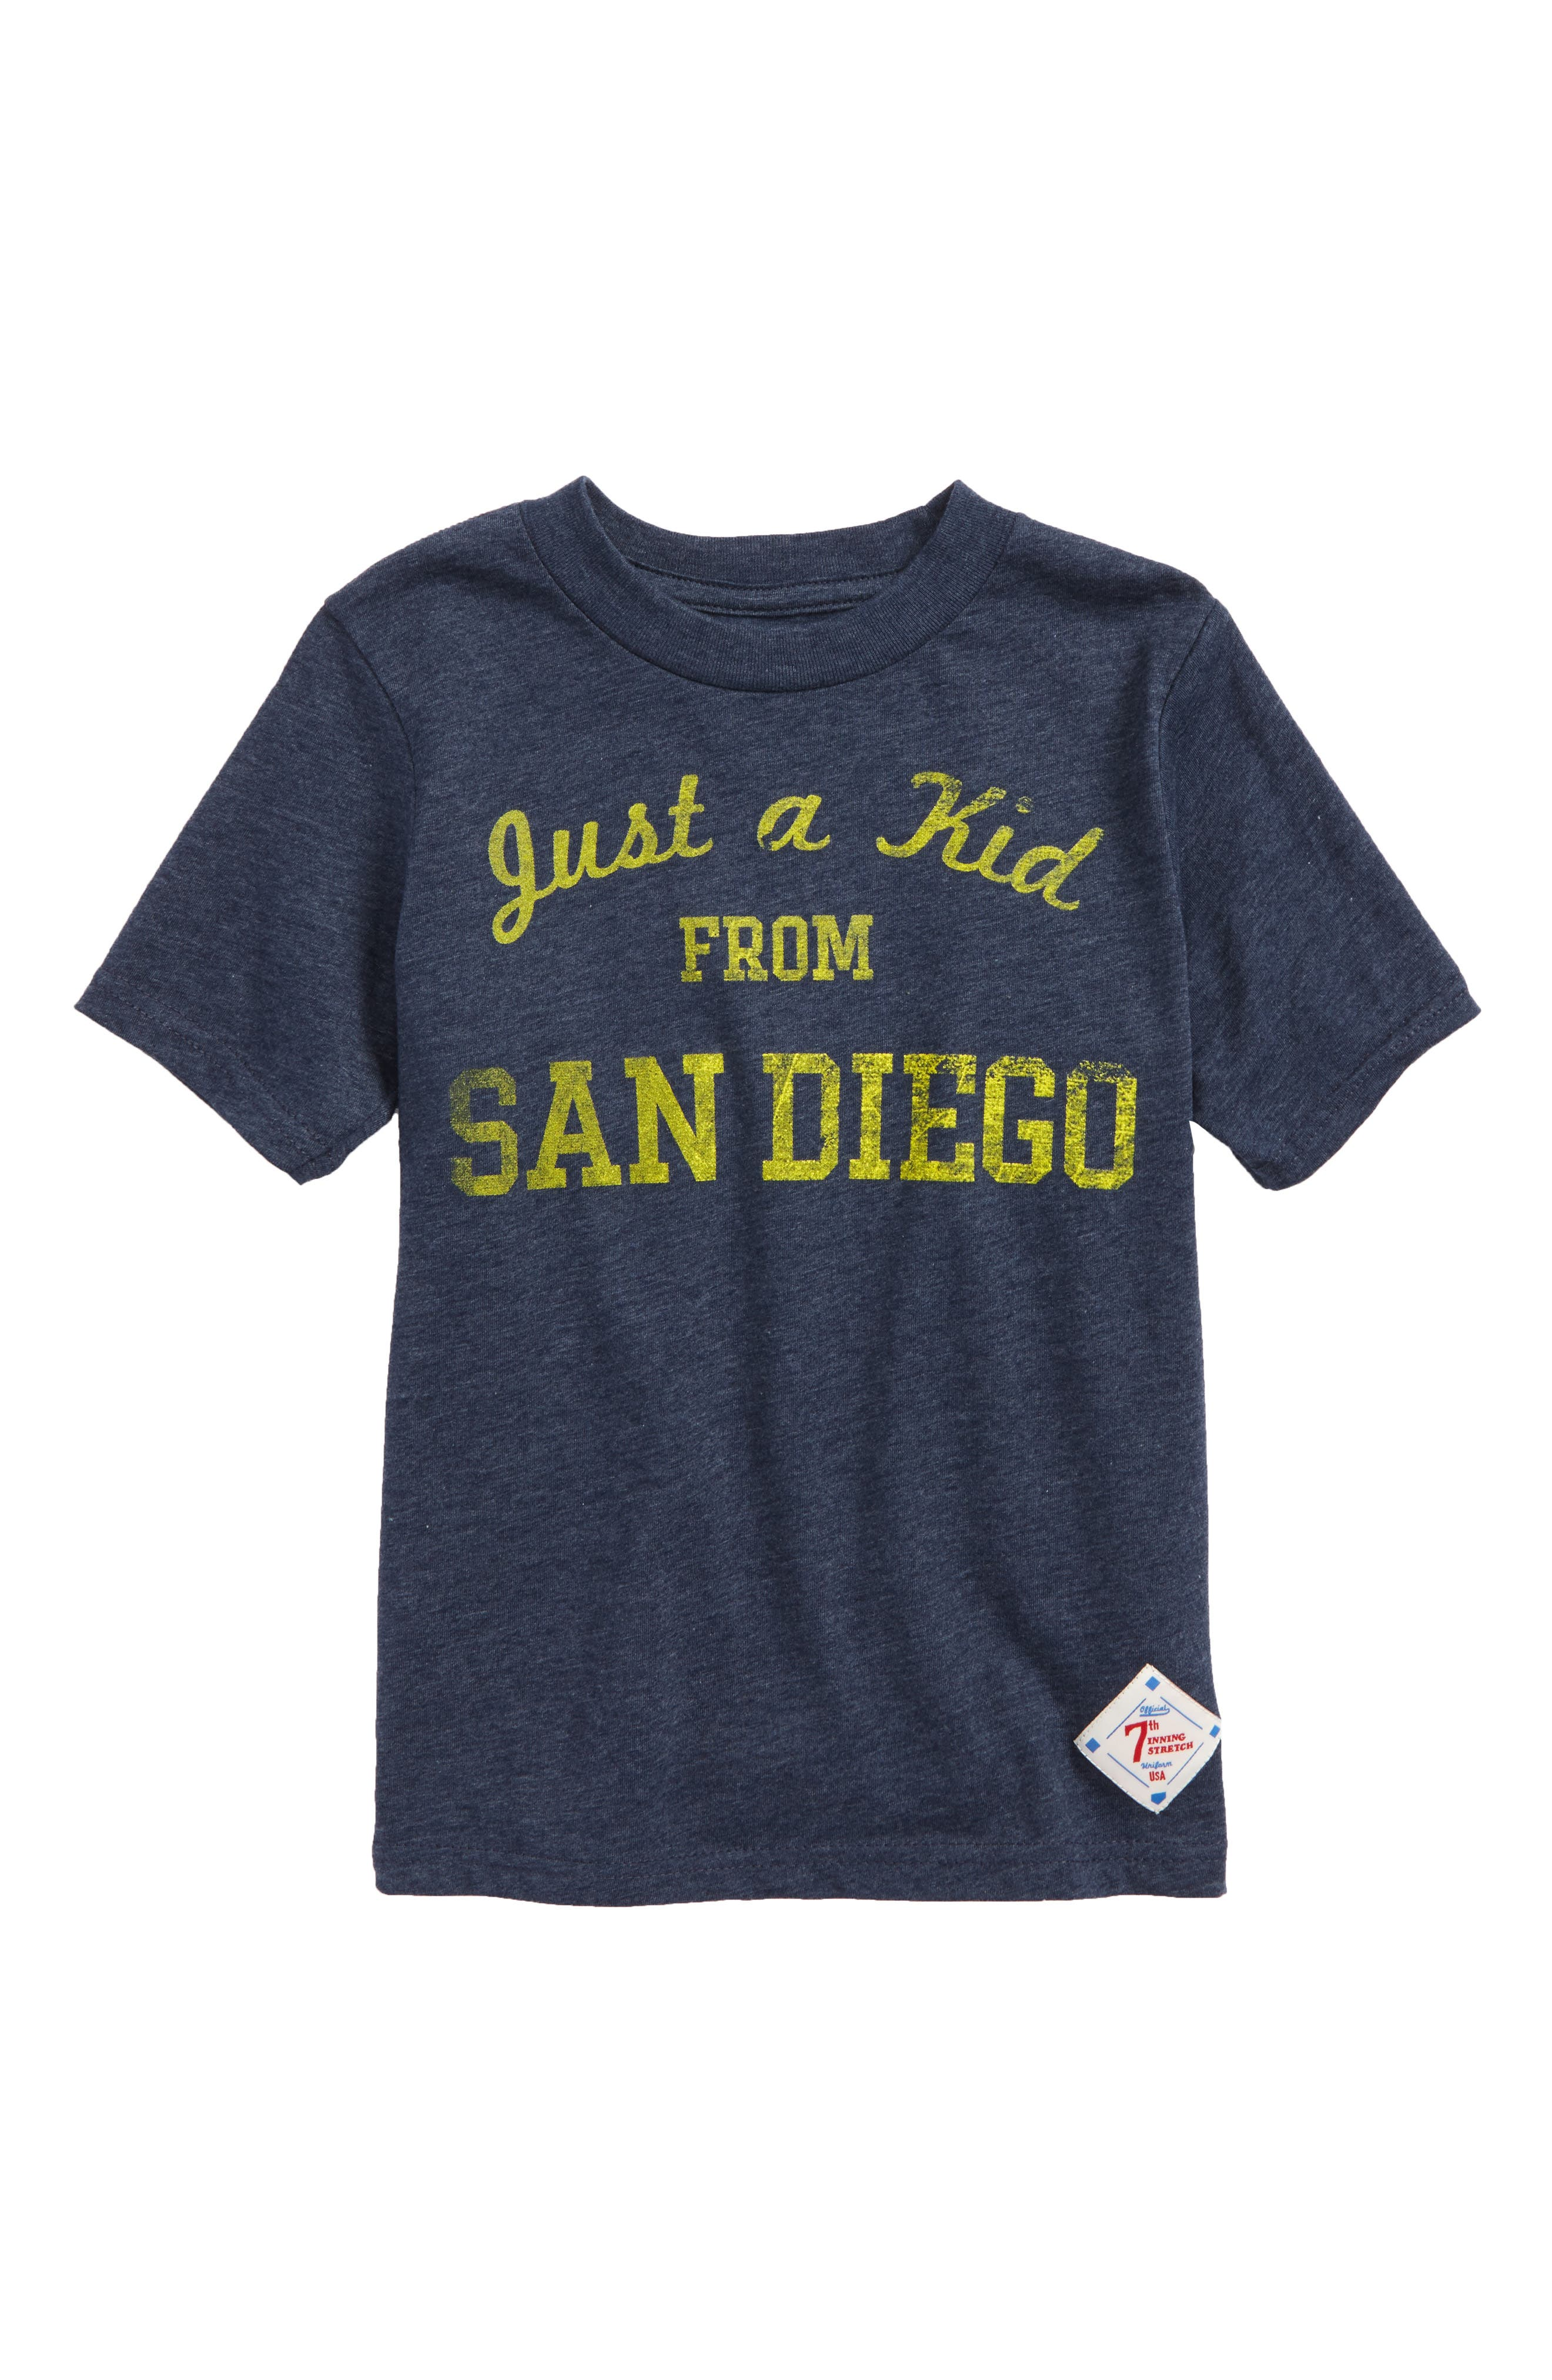 Just a Kid from San Diego Graphic T-Shirt,                         Main,                         color, Navy/ Gold